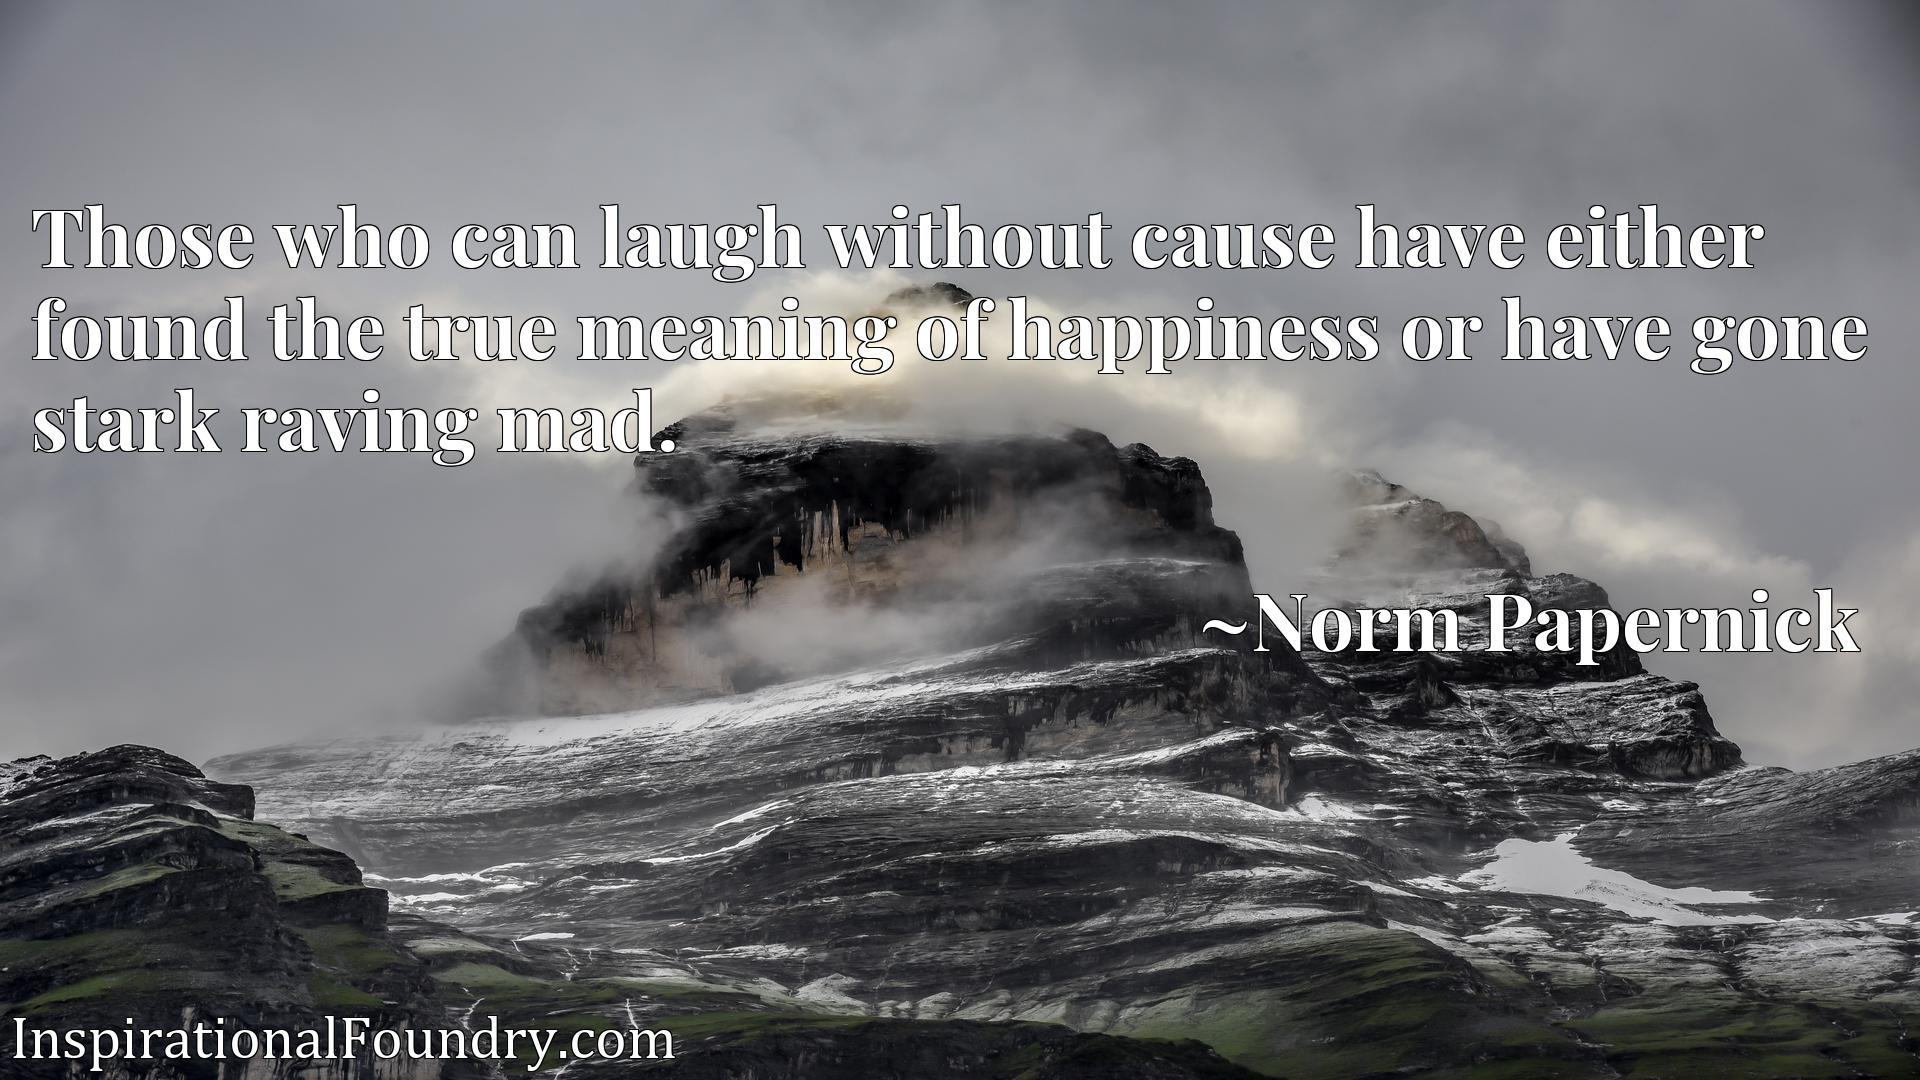 Quote Picture :Those who can laugh without cause have either found the true meaning of happiness or have gone stark raving mad.